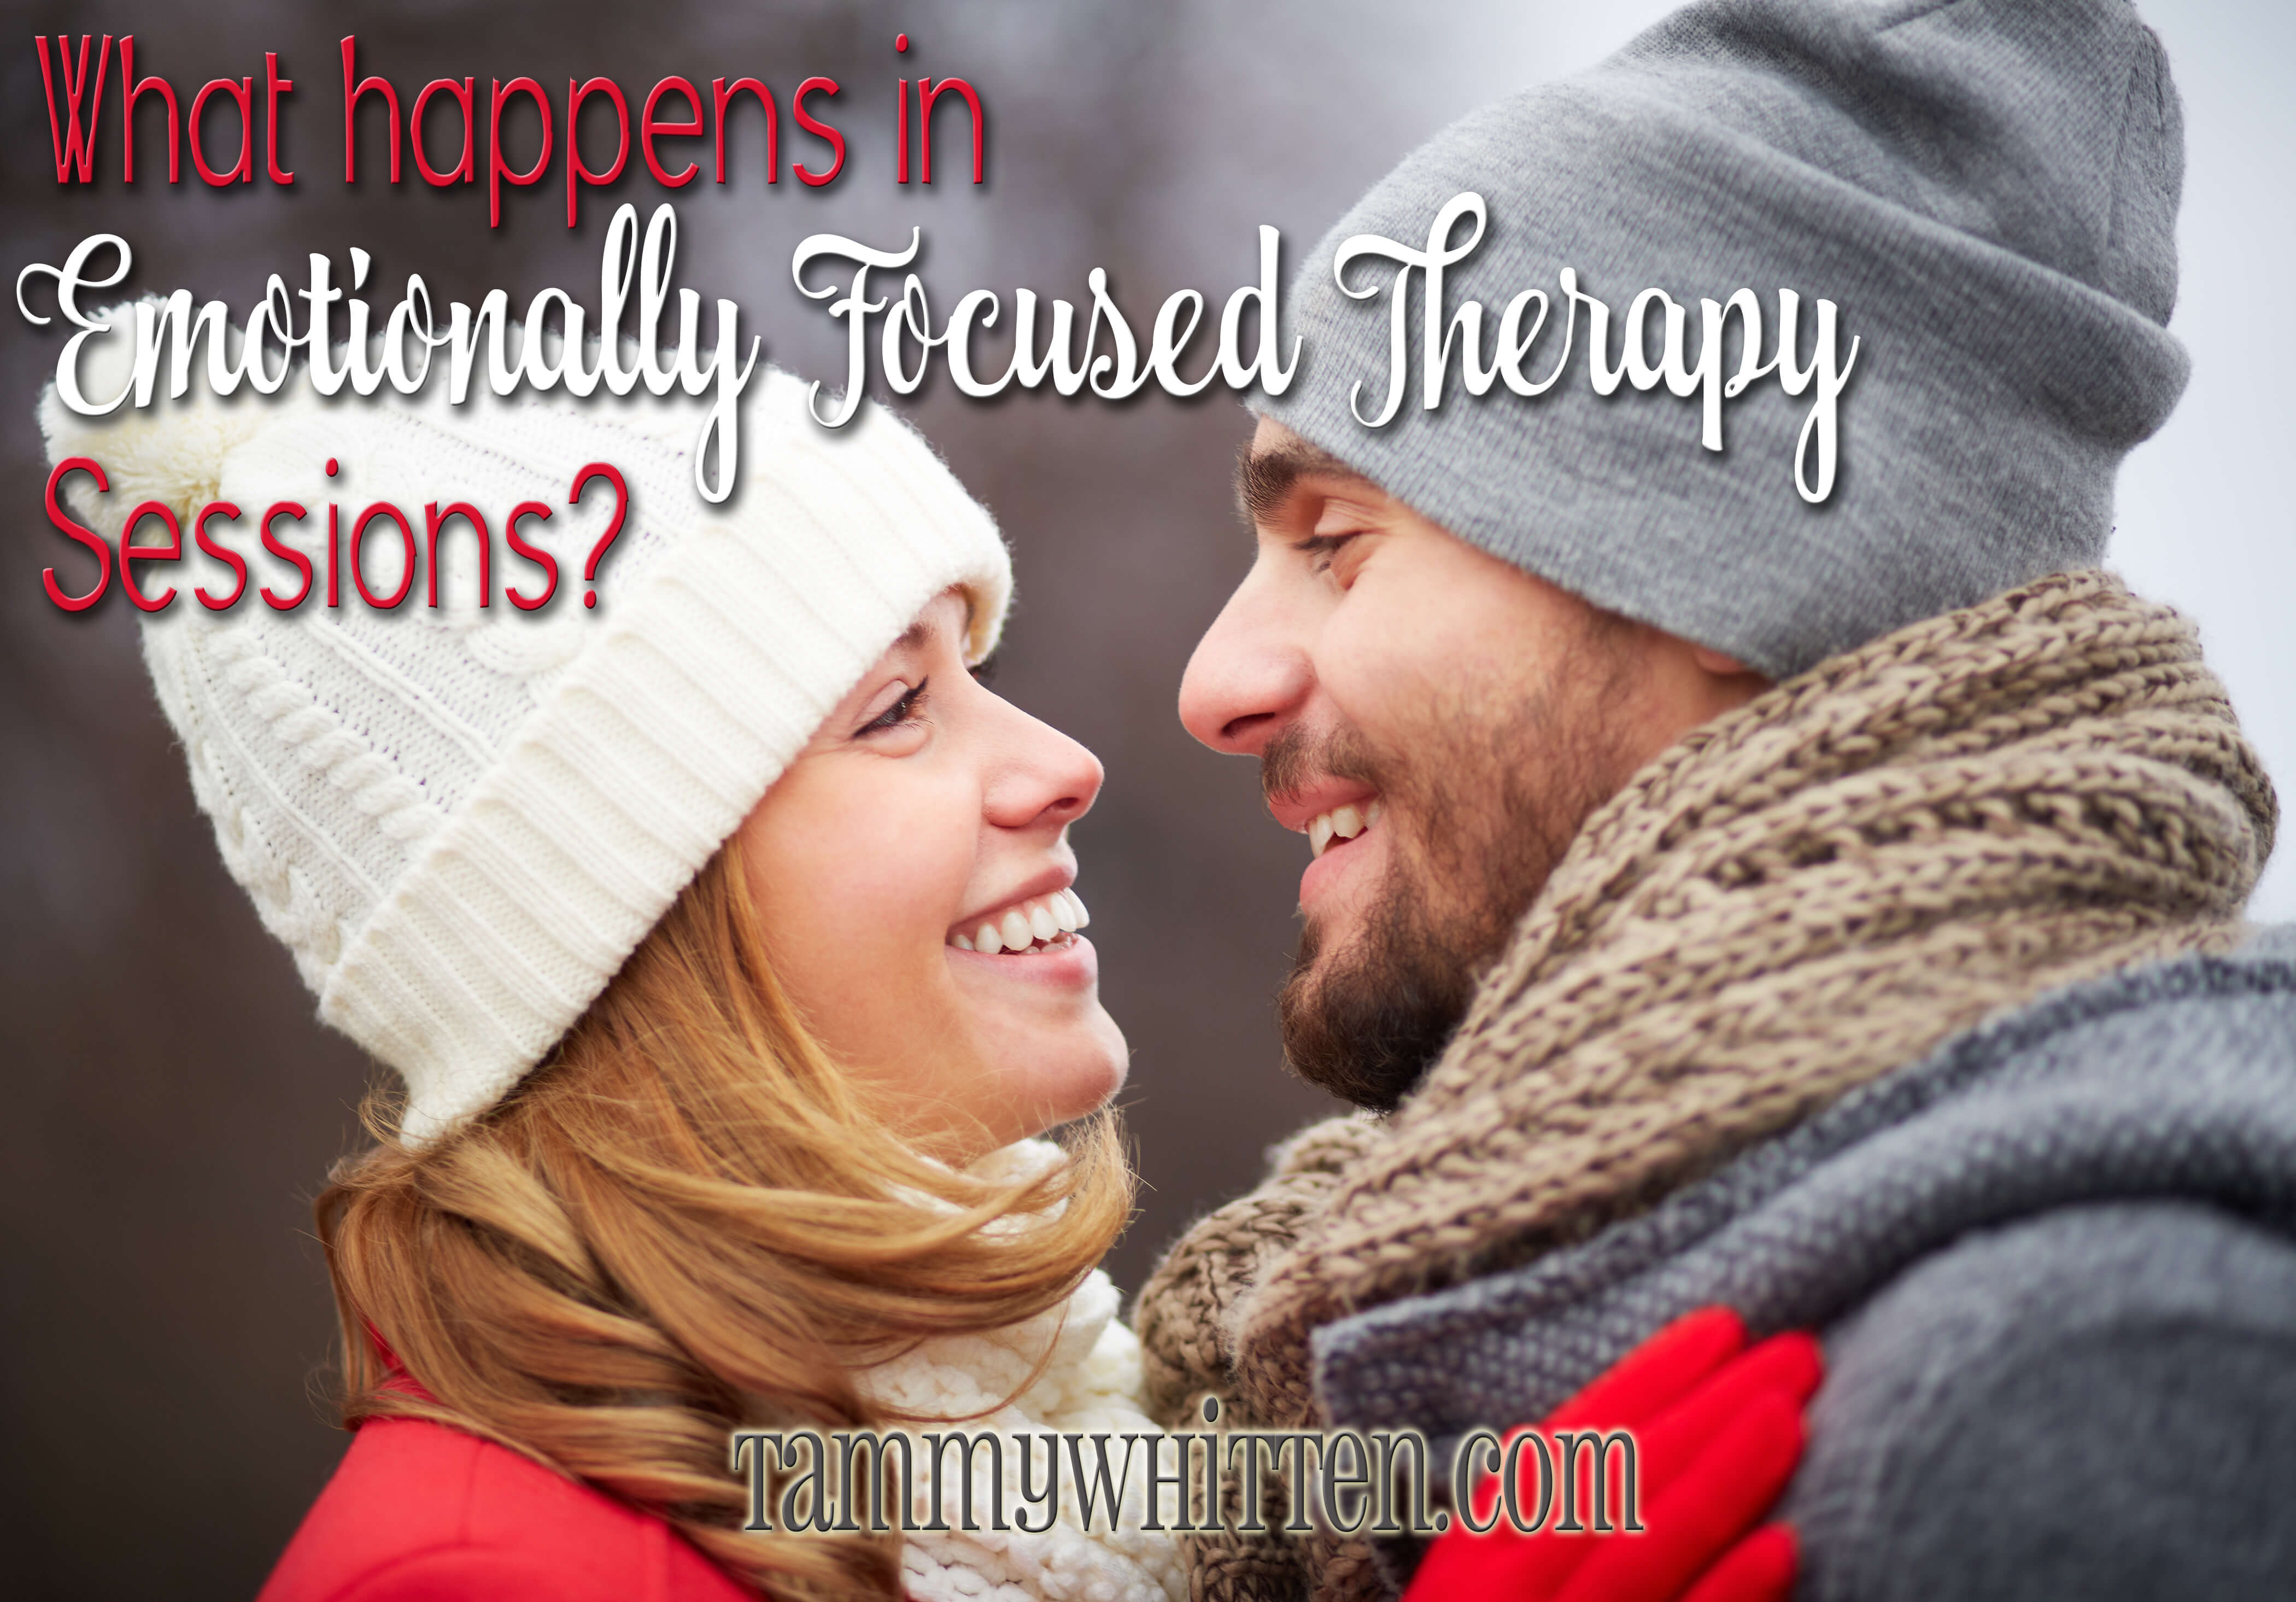 What Does Emotionally Focused Therapy (EFT) Look Like in Sessions?